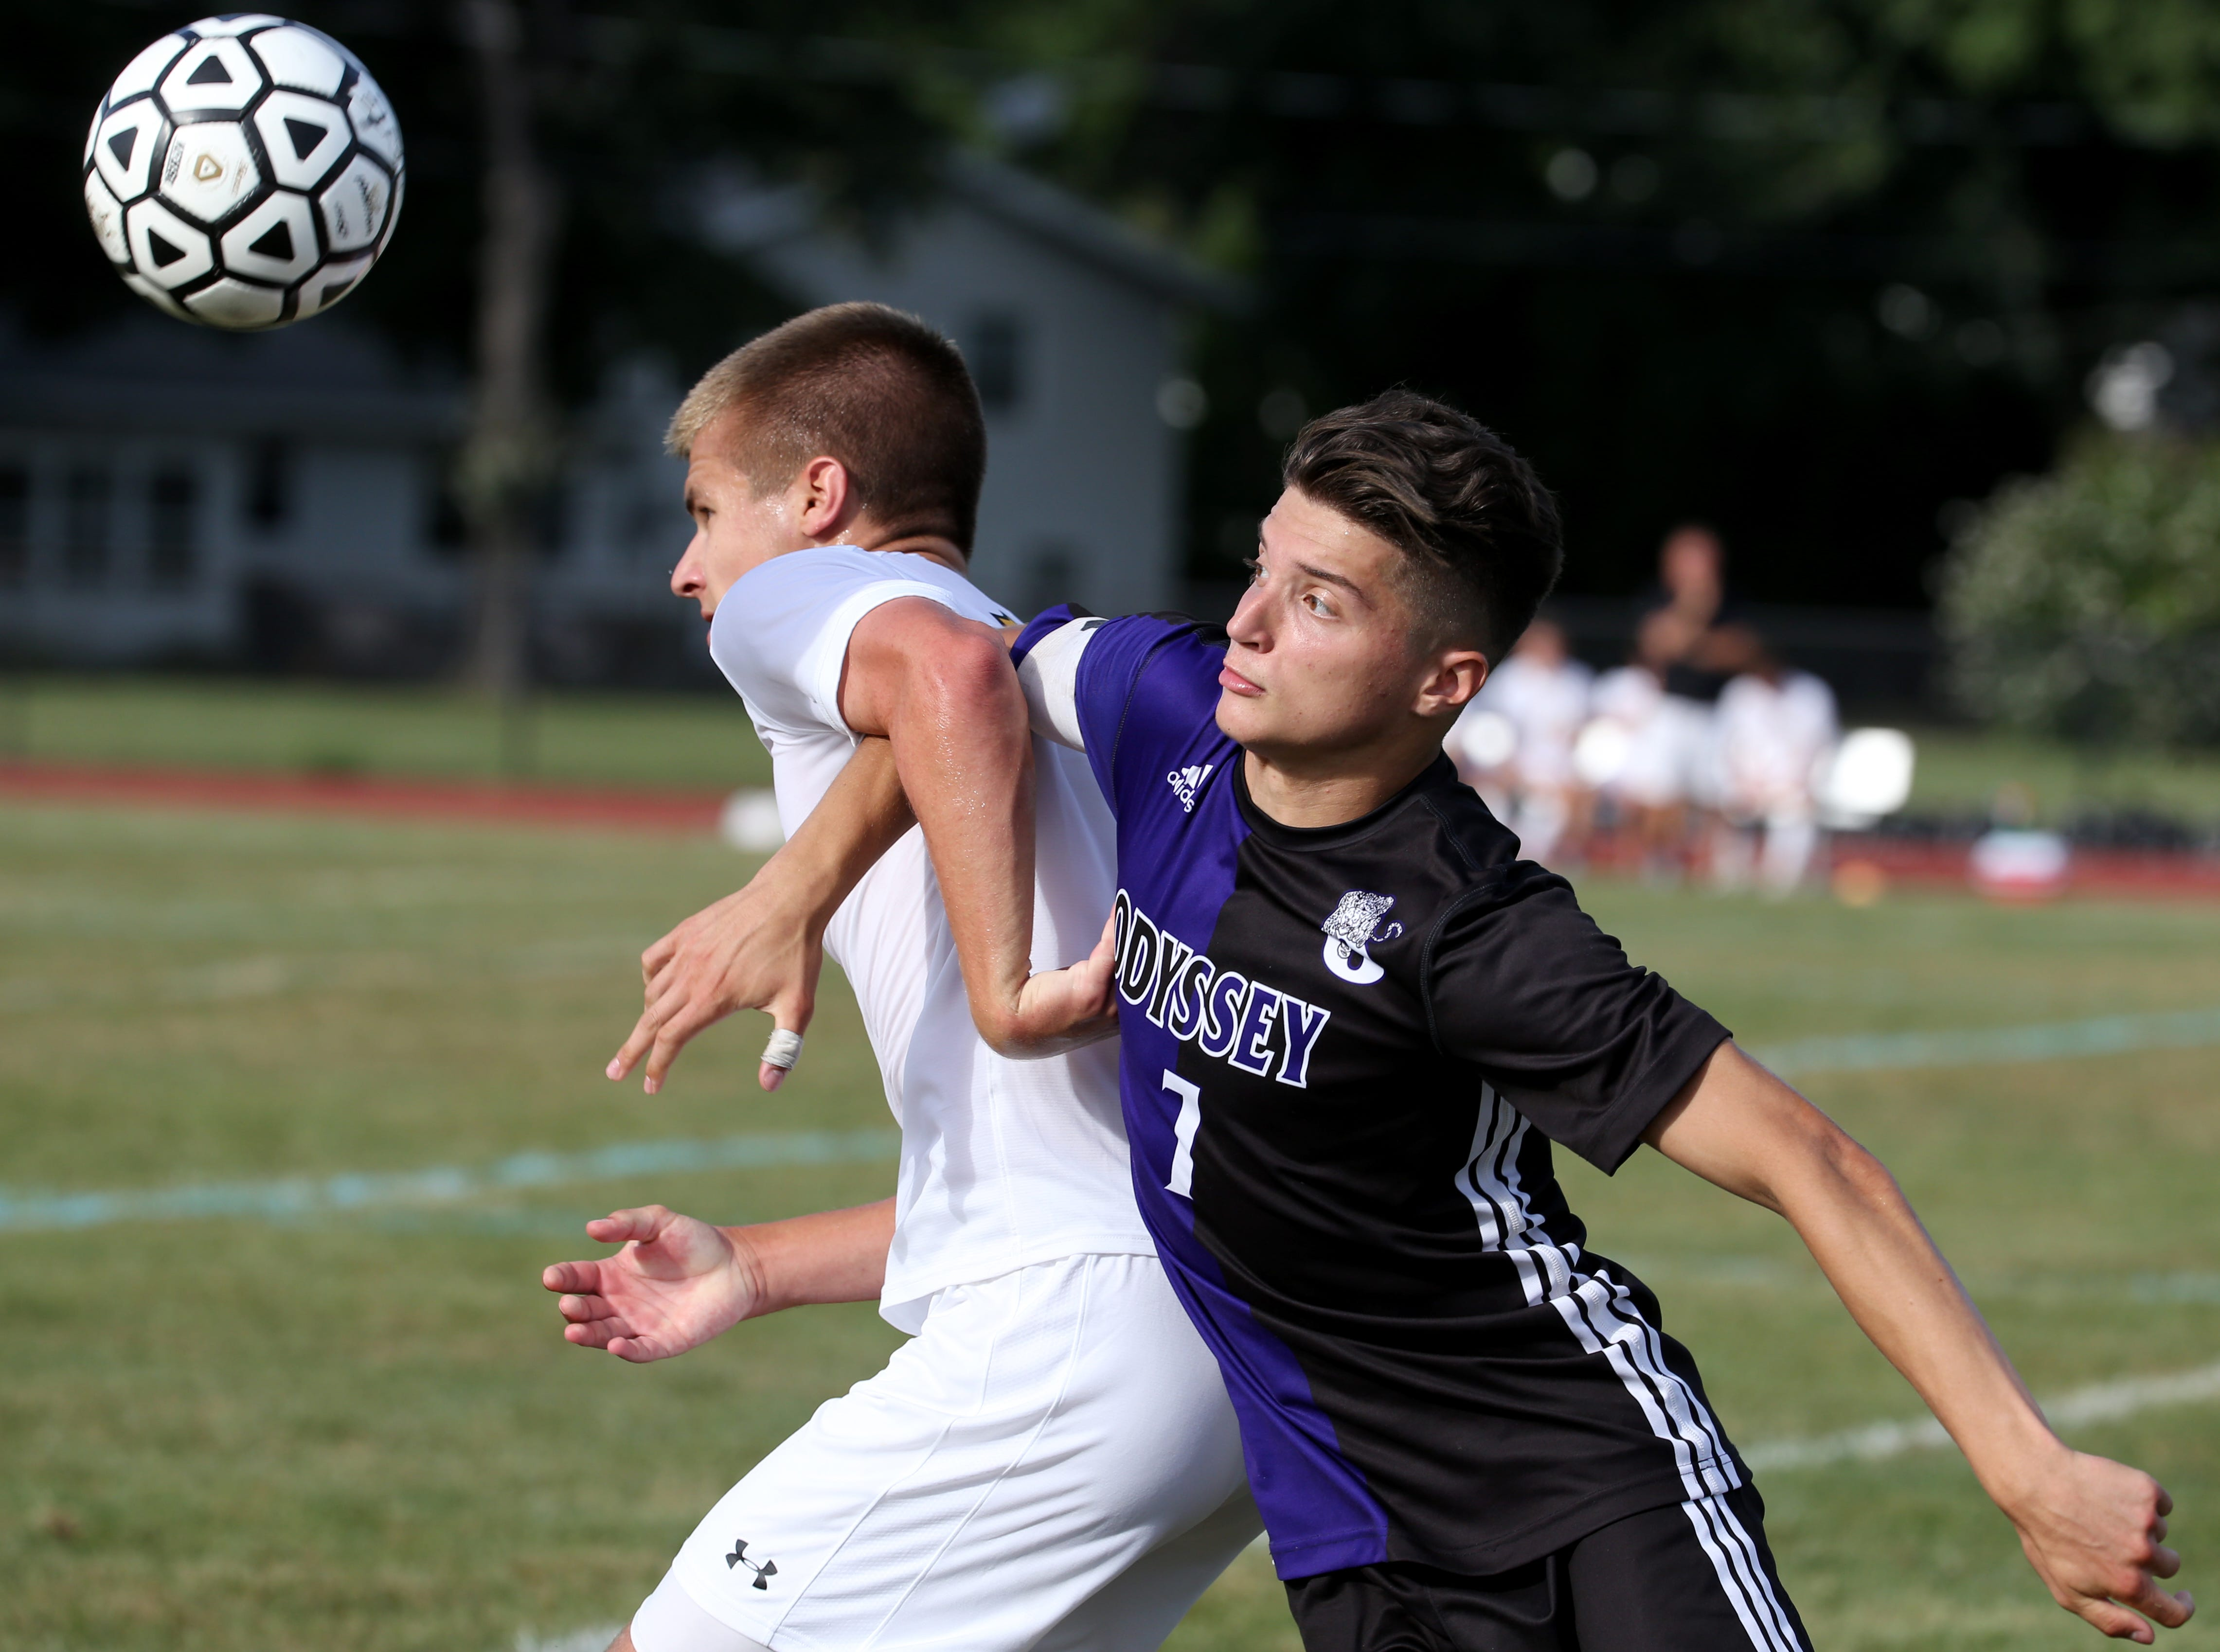 HF-L's Jack Emerson (11) and Greece Odyssey's Dylan Ange (7) battle for the ball Thursday night at Greece.